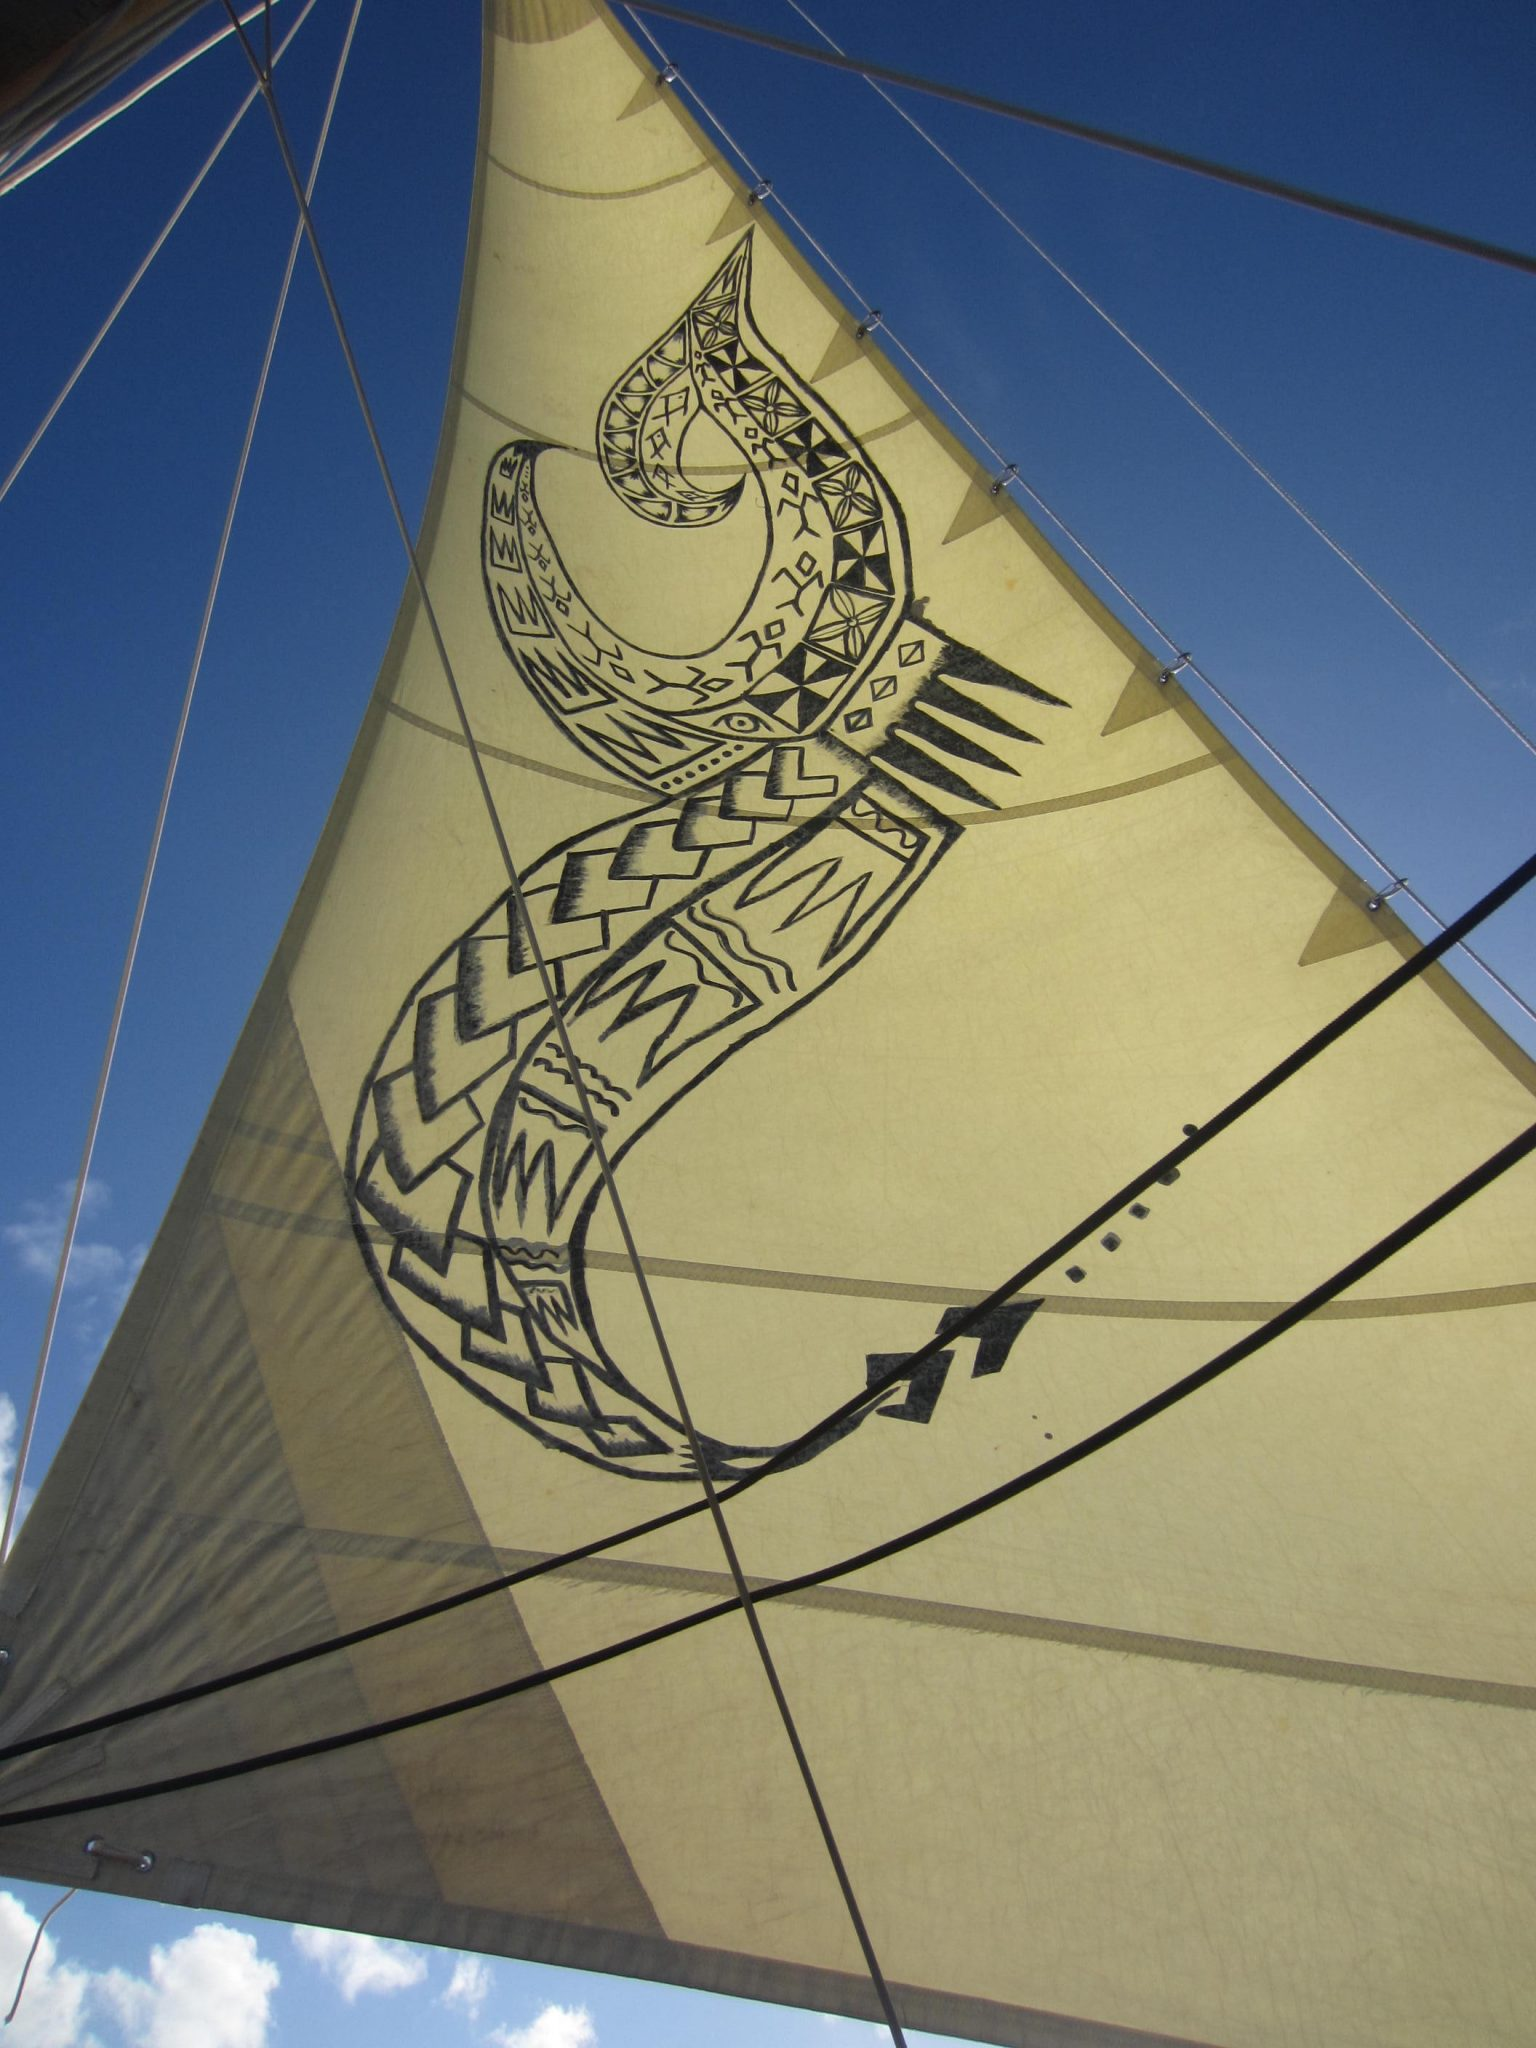 82. Ancient Samoan symbols decorate the Gaualofa's sails